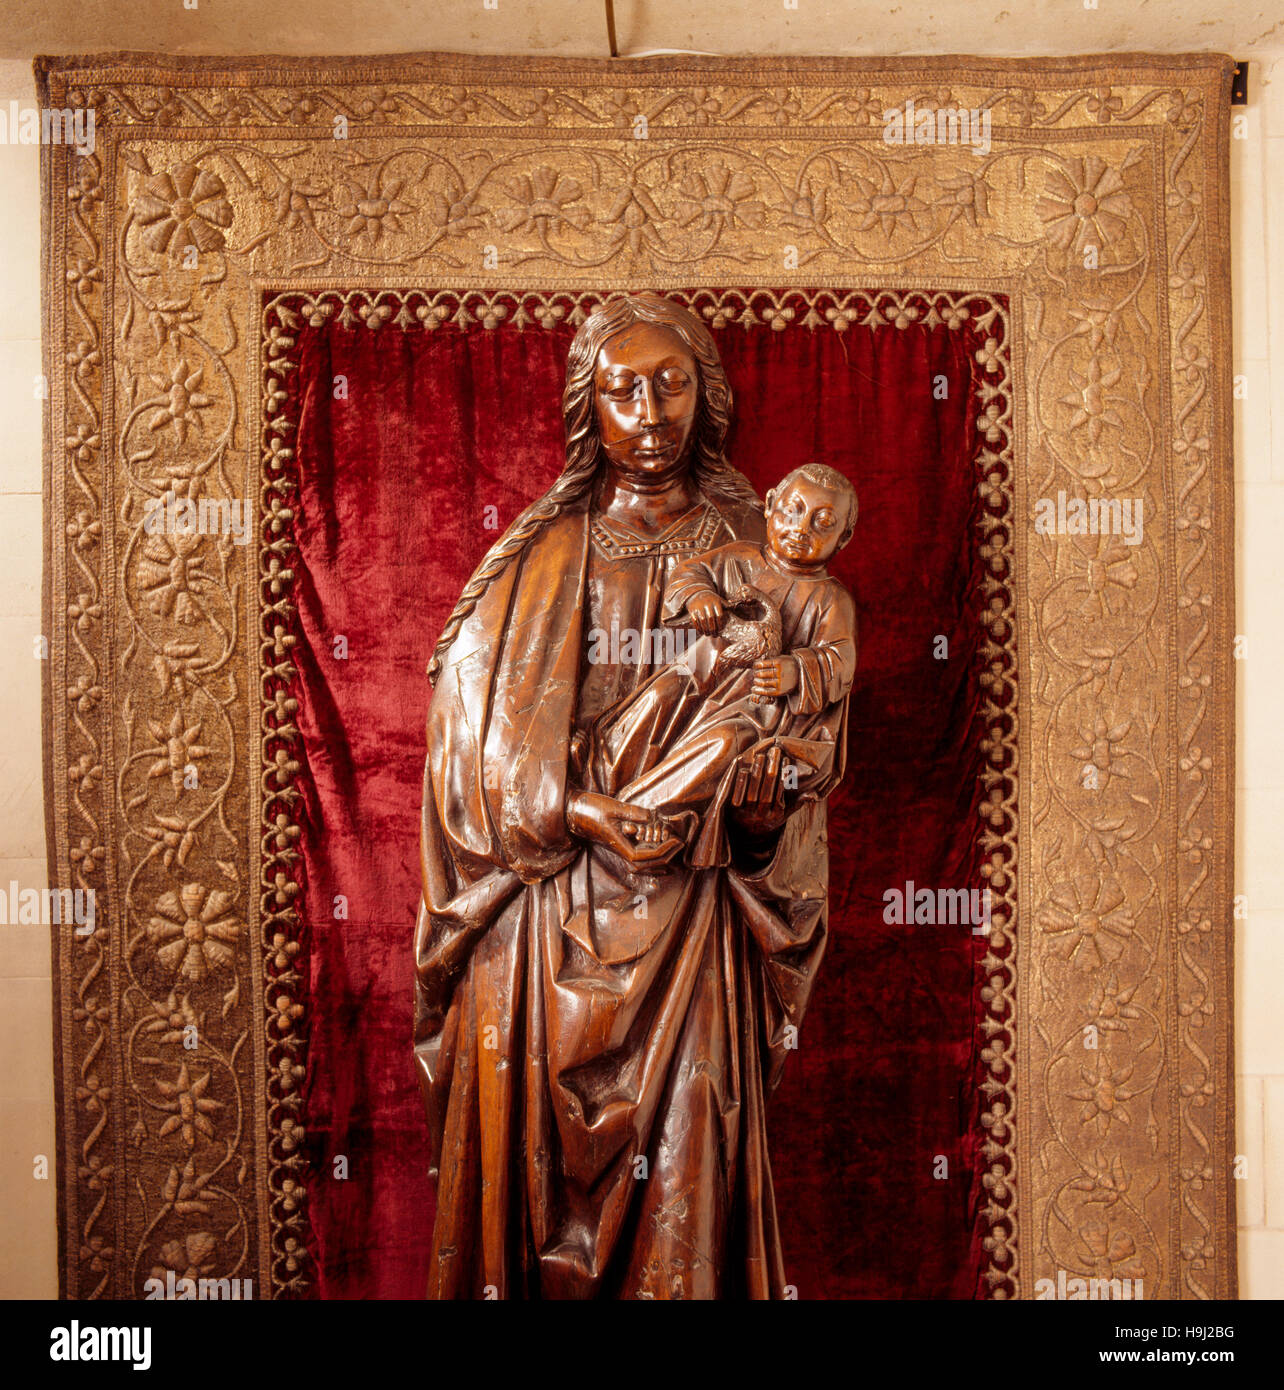 In the Long Gallery, nearly life-size carved wood figure of the Virgin and Child in frame, in the alcove. It was - Stock Image